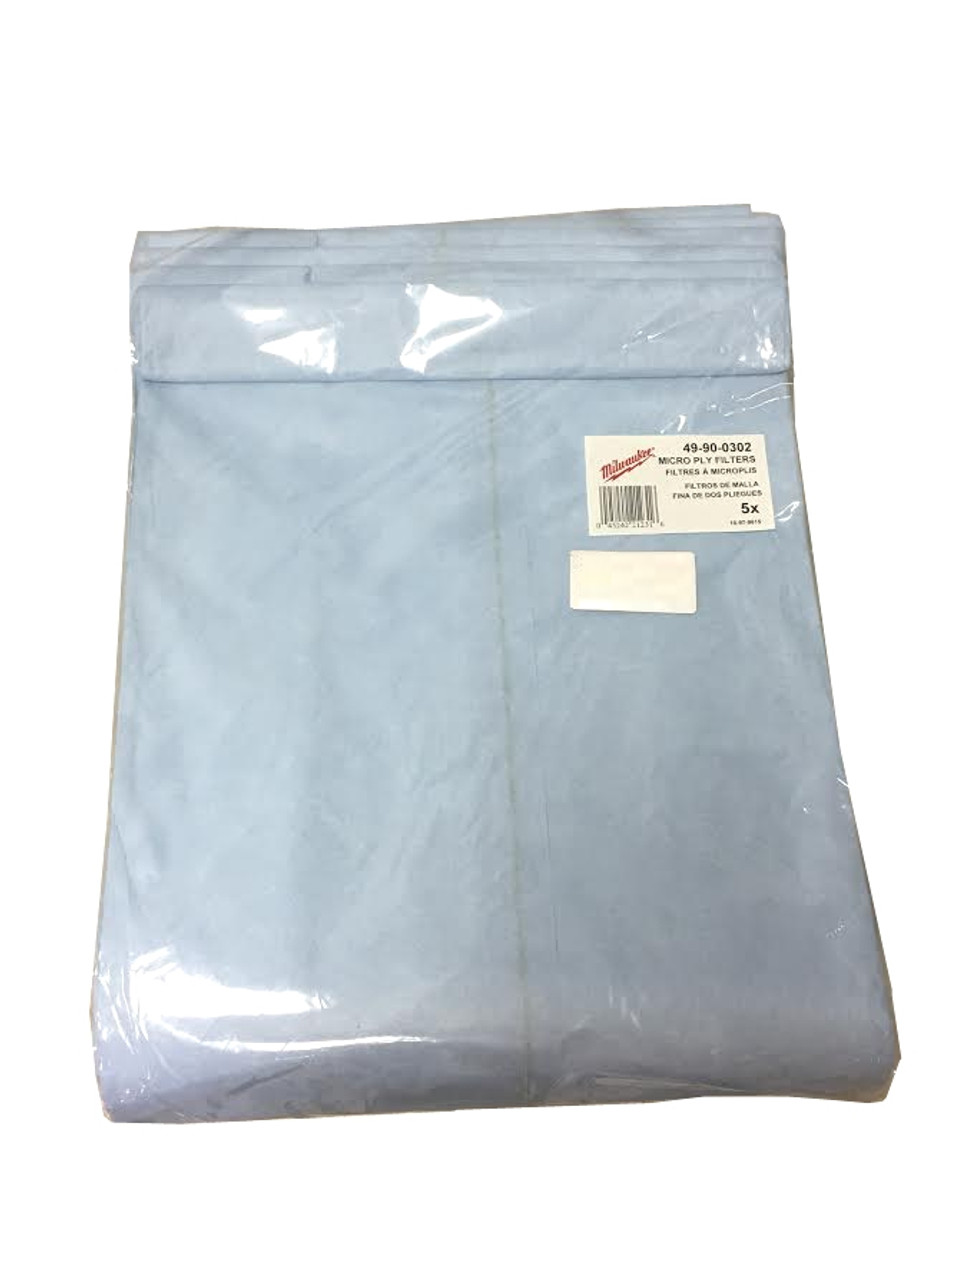 Milwaukee 49-90-0302 Paper Filter Bags (5 Bags)